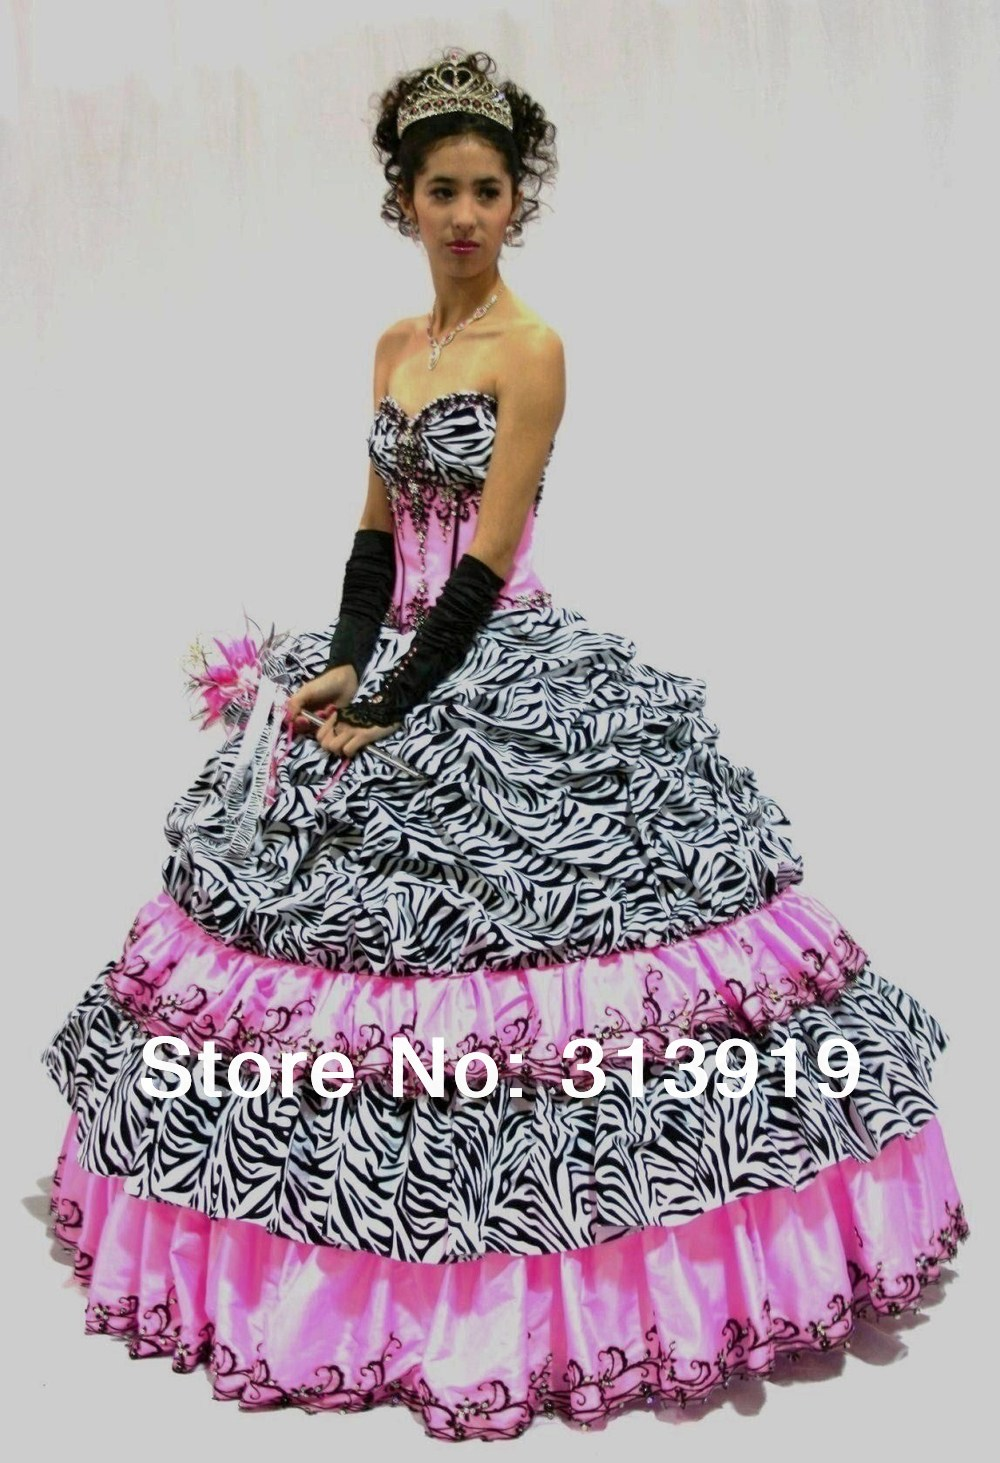 Zebra Striped Homecoming Dresses 78